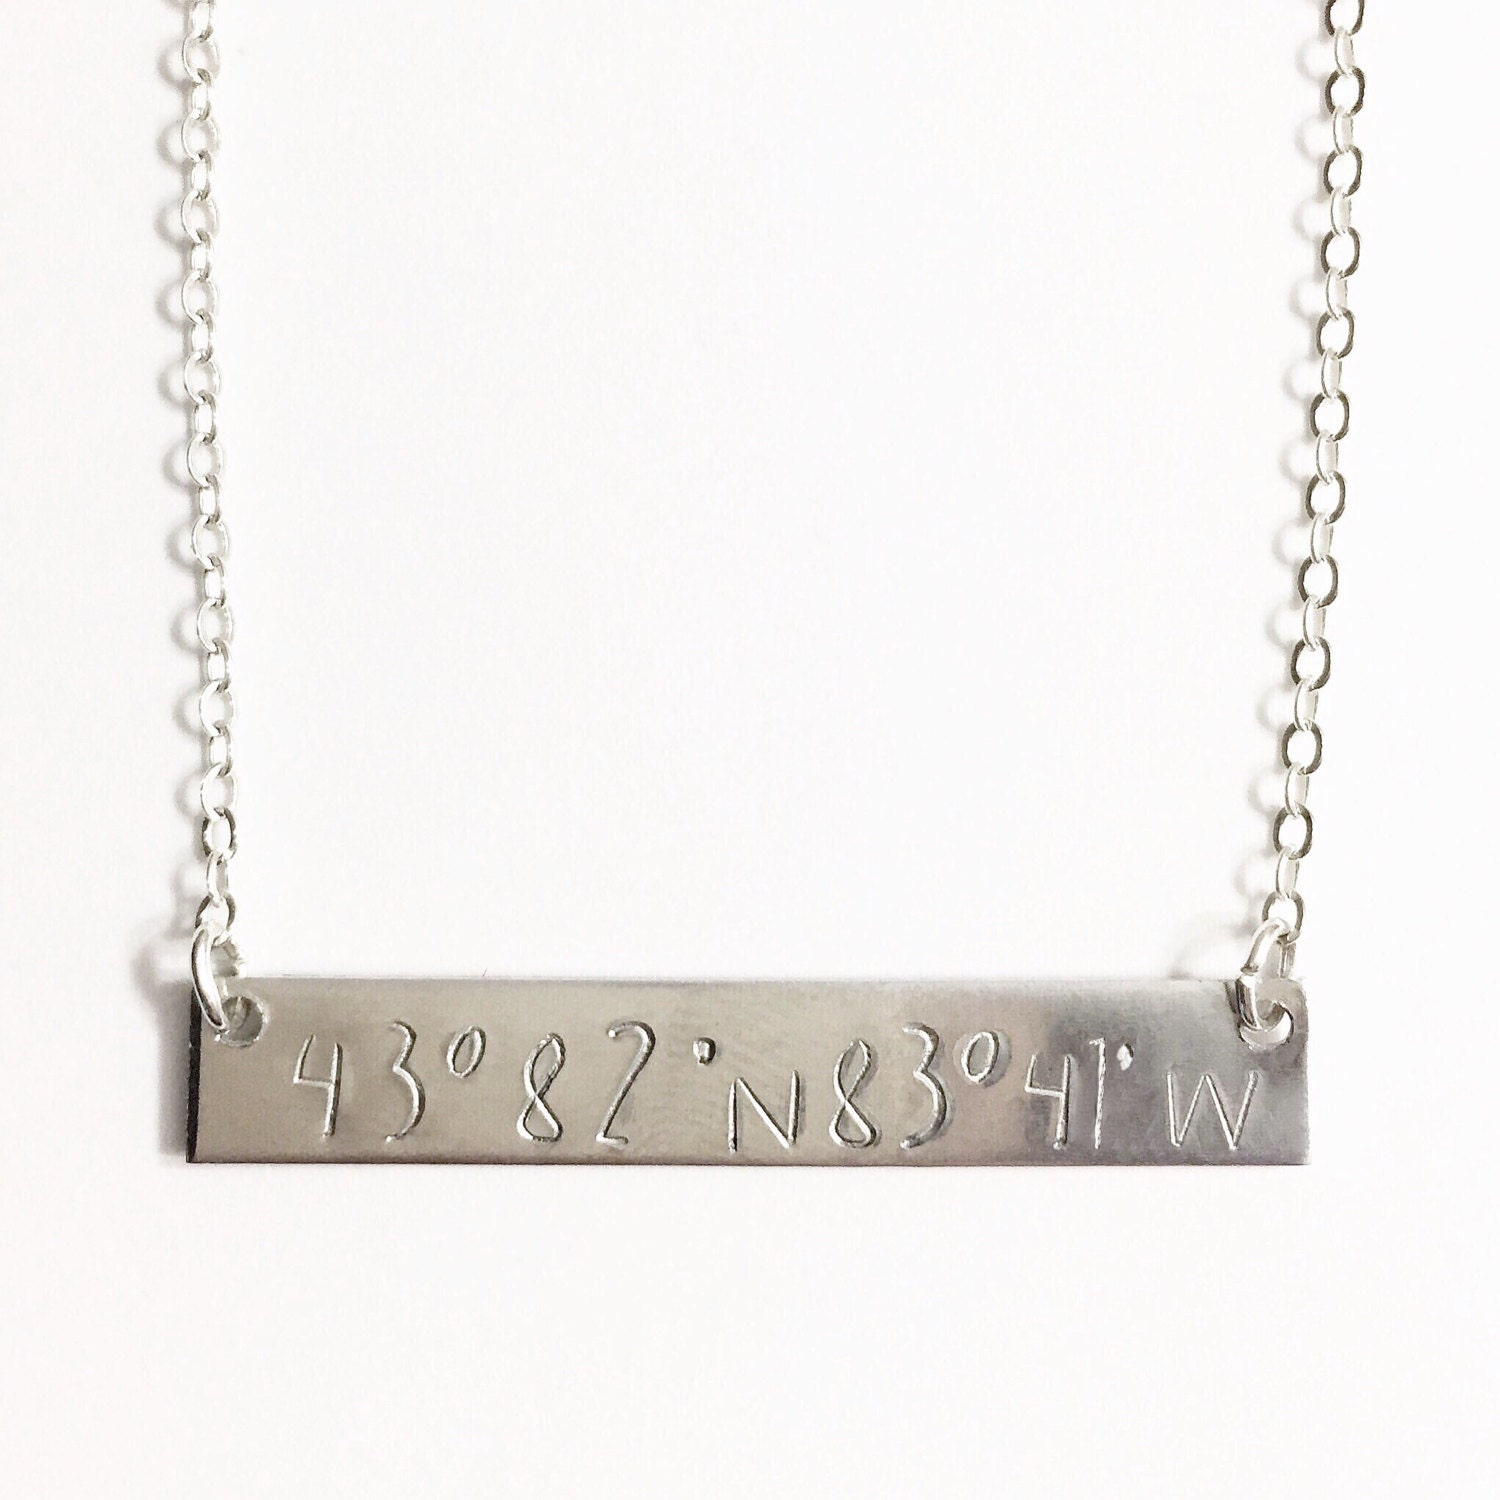 Gps Coordinates Necklace: Latitude Longitude Necklace Coordinates Necklace Location